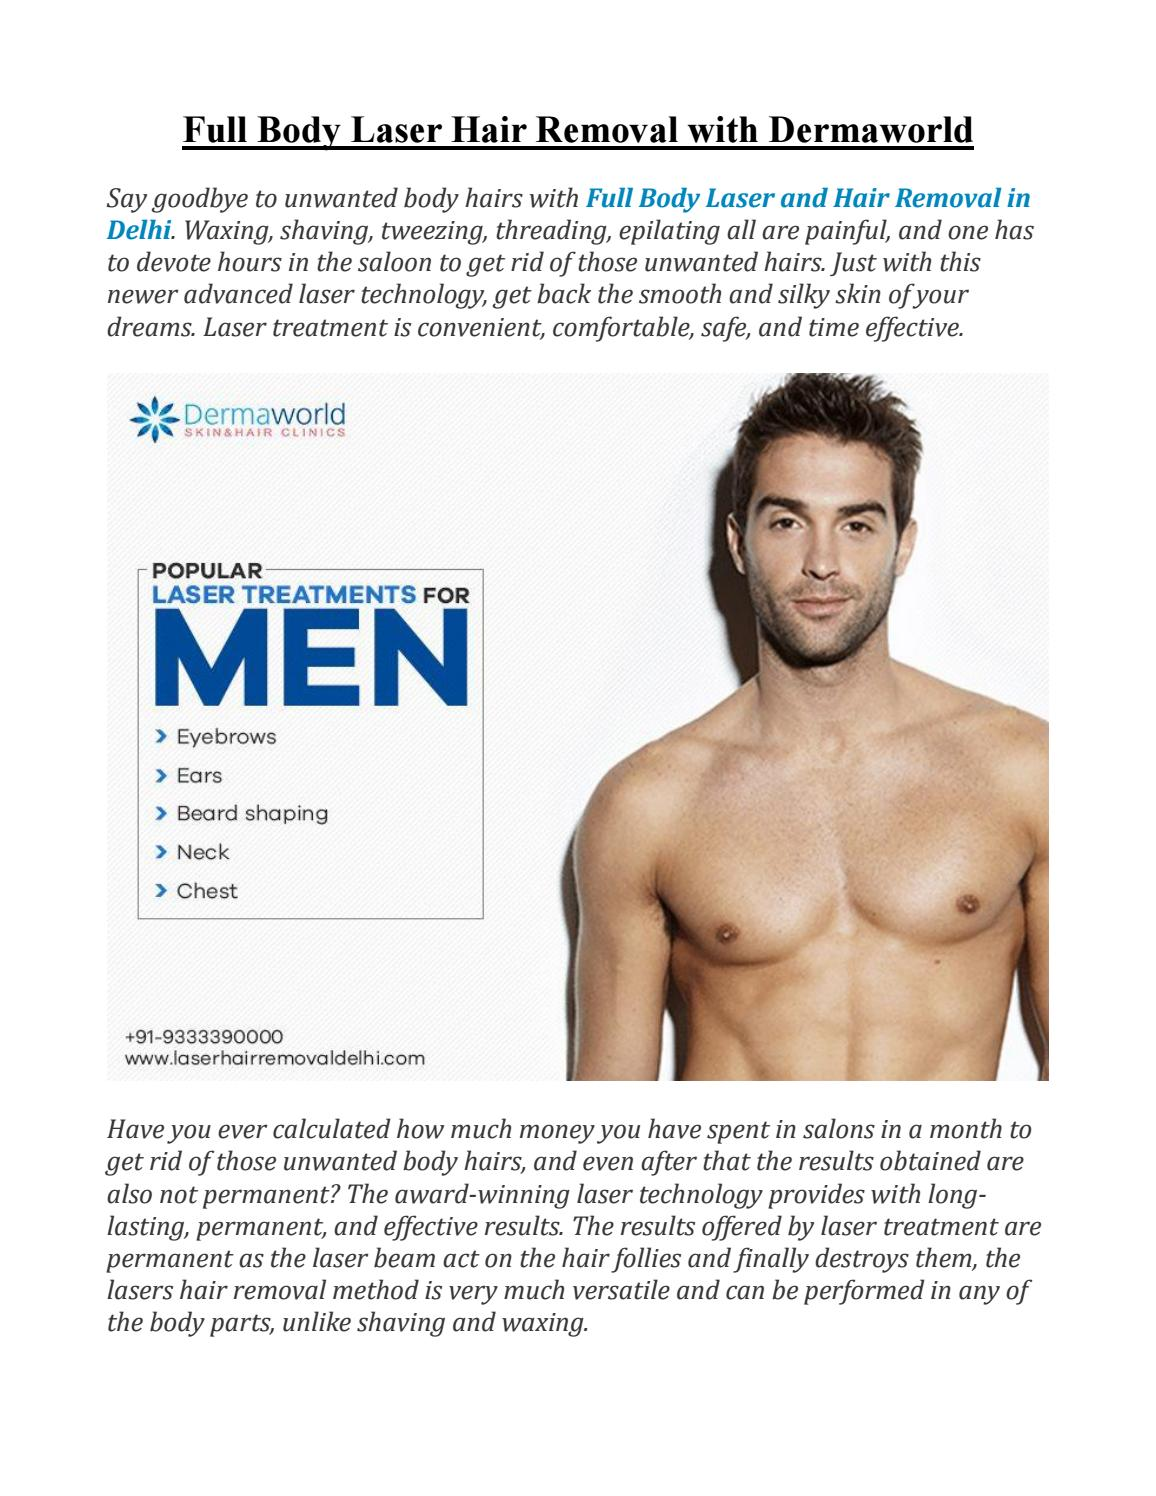 Full Body Laser Hair Removal With Dermaworld By Rohit Batra Issuu